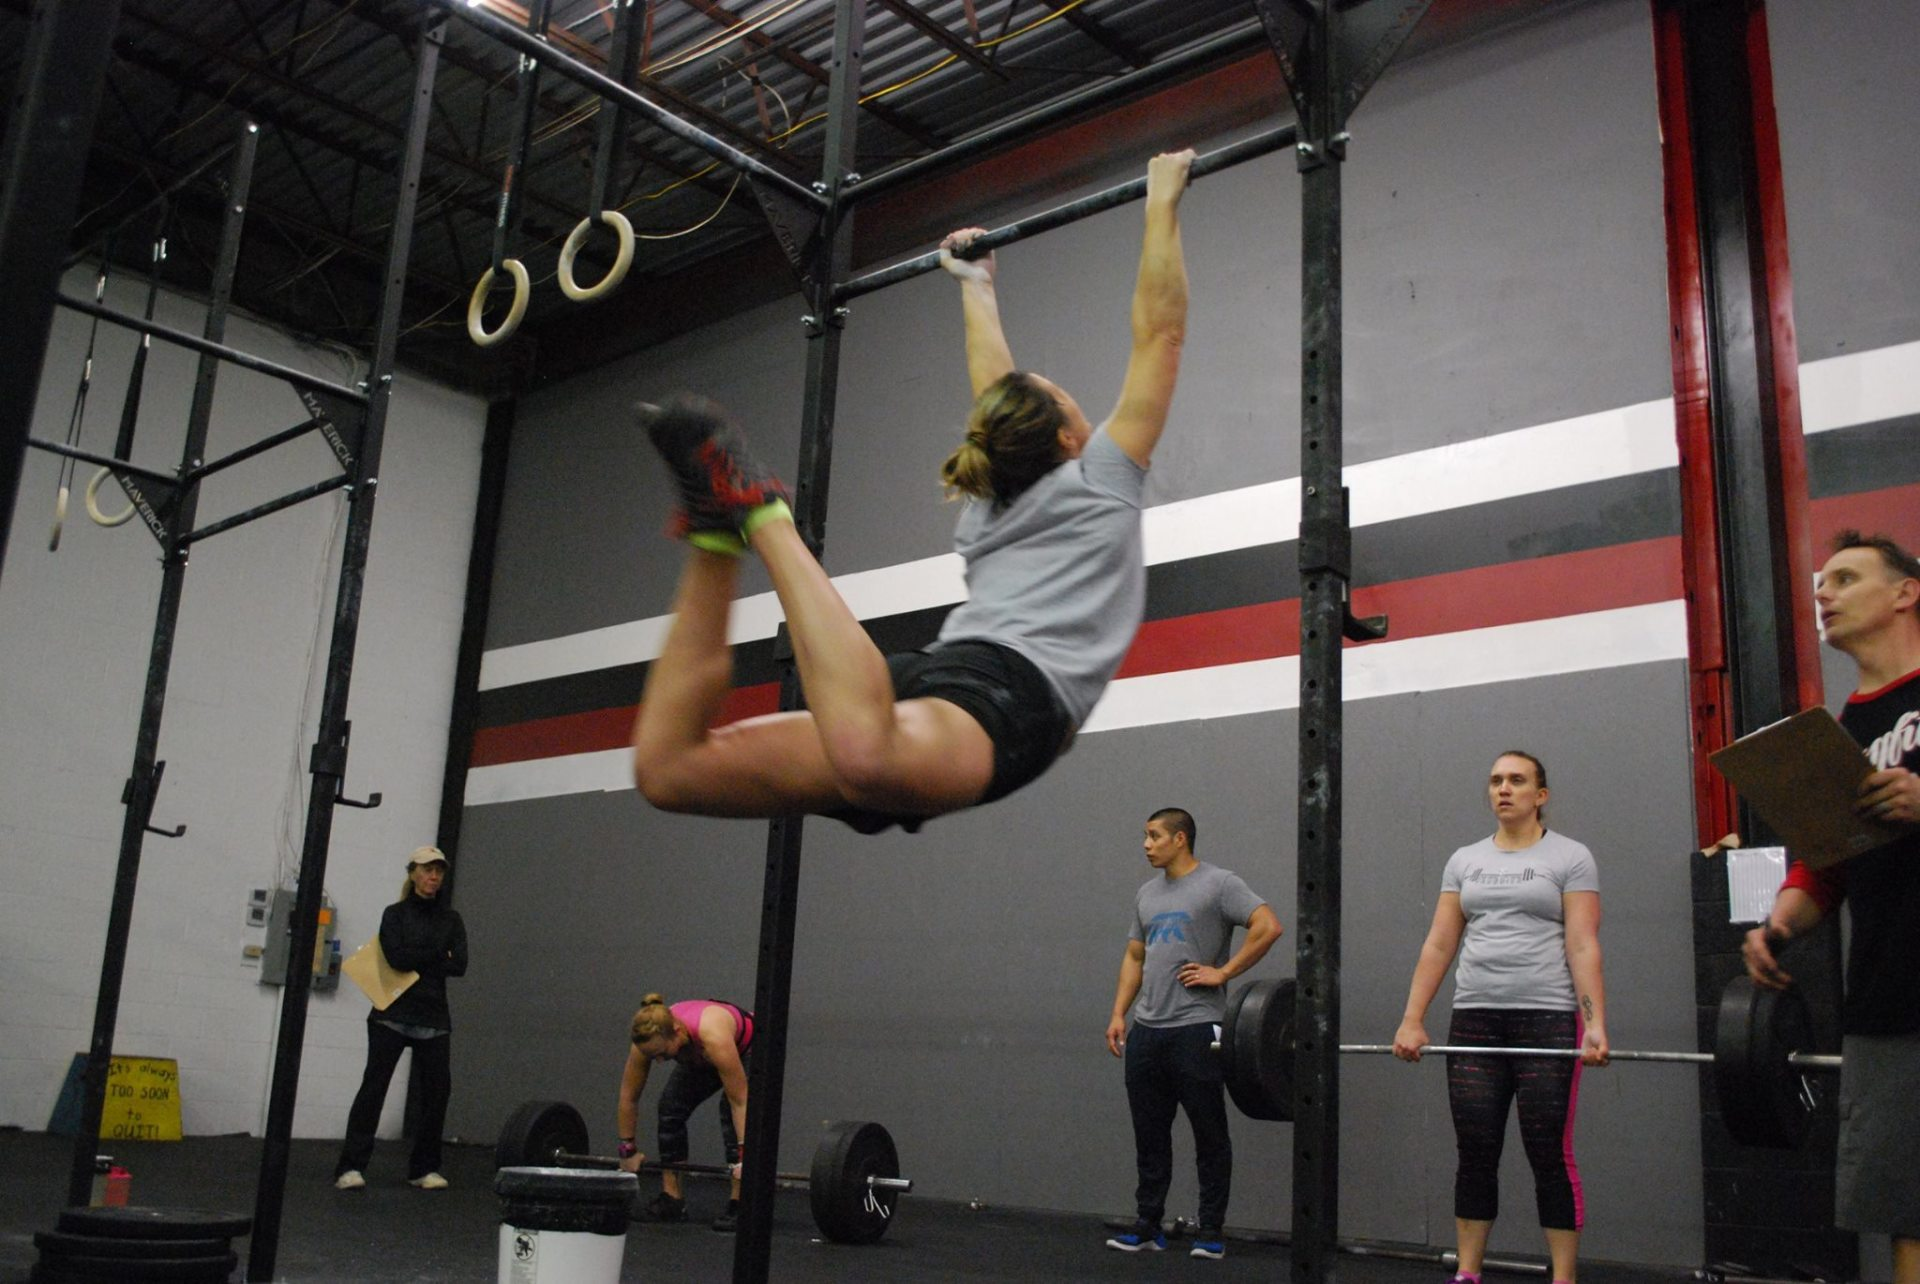 Crossfit Competition - Toes To Bar